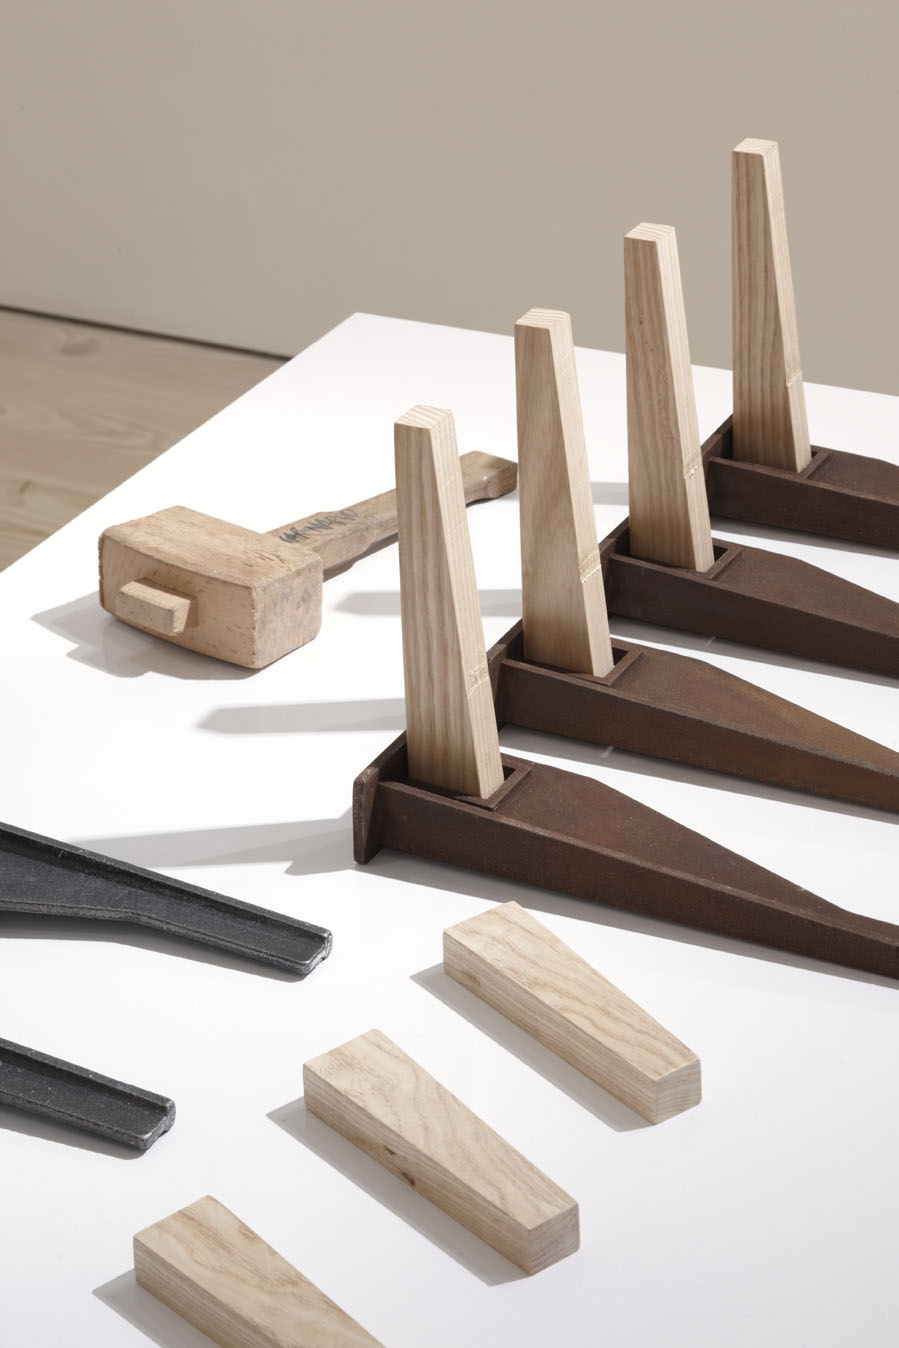 """Michael Marriott on Keel Series Bench """"By focusing on one of the most ancient engineering principles known to man, Narud has generated a series of forms that all feed off the nature of wedging. The finished objects hold some of that direct basic force found in machinery and equipment made during the industrial revolution, and with a similarly utilitarian vernacular."""""""